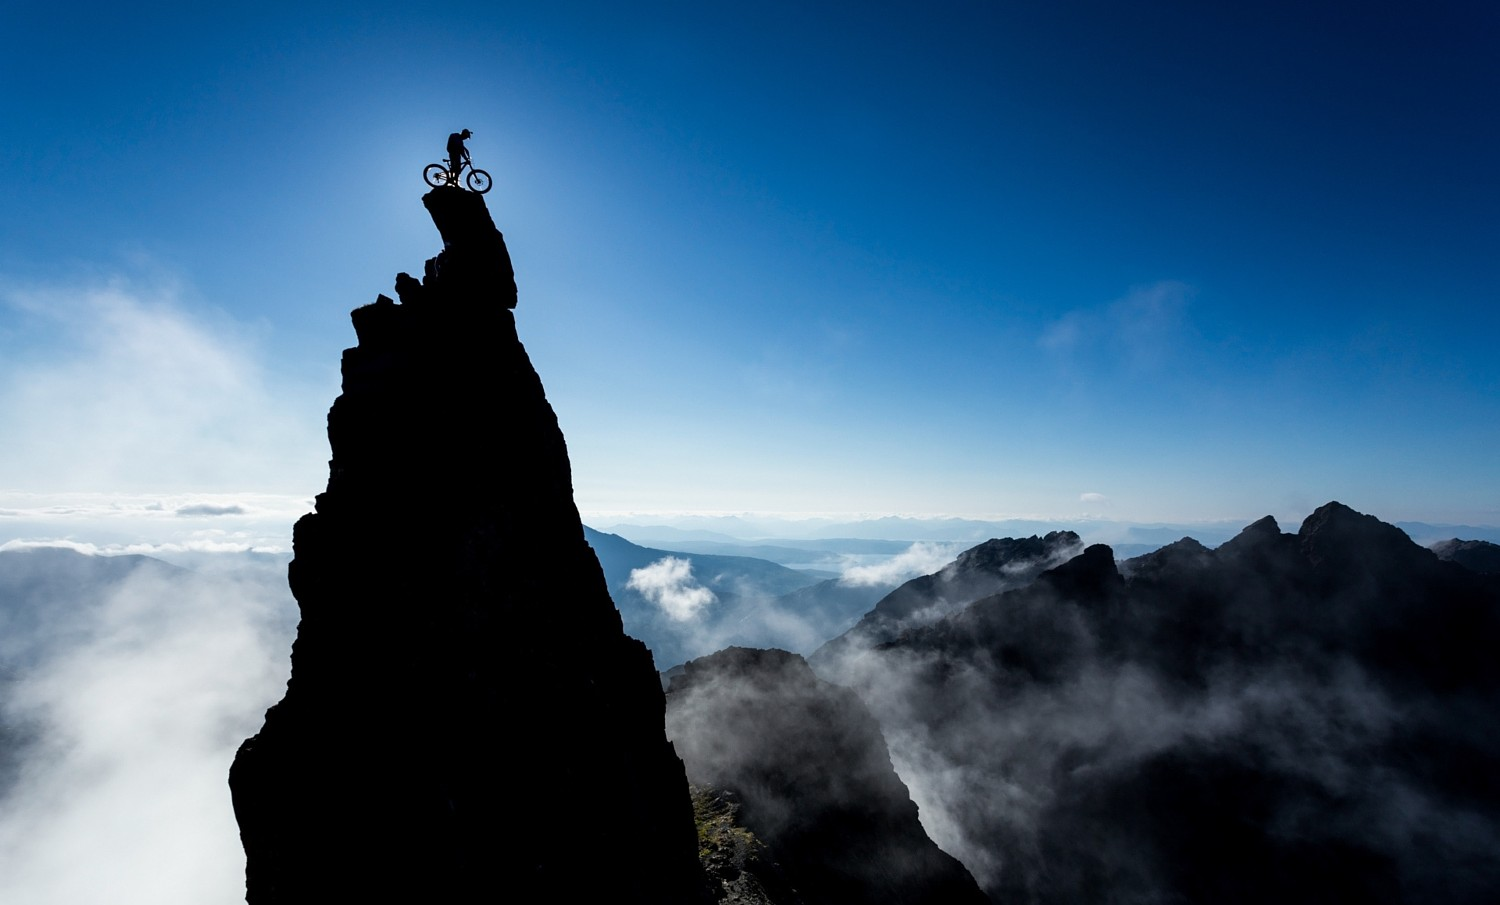 The Most Incredible Mountain Bike Photo on 500px Has a Video to Match